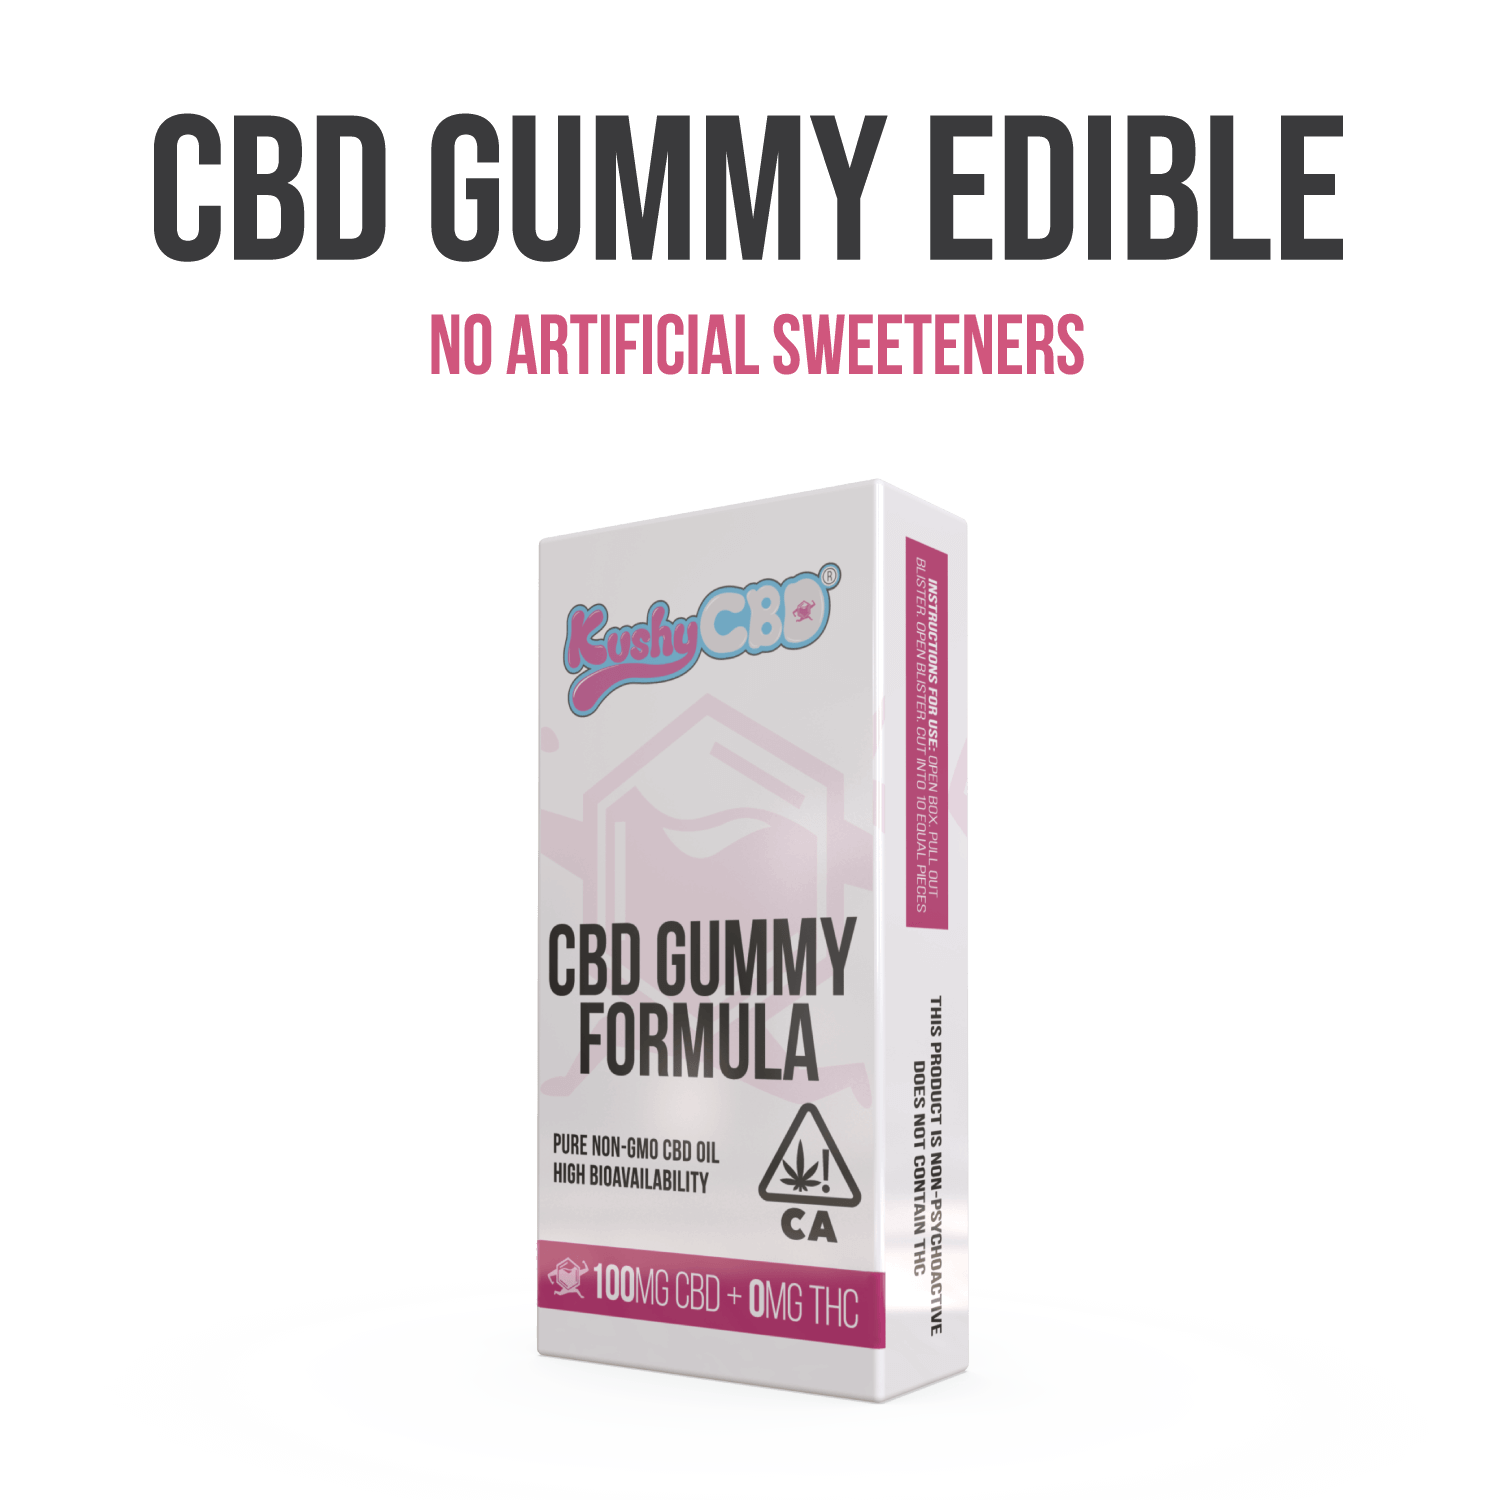 KushyCBD | Award-Winning CBD Gummies and More | KushyCBD